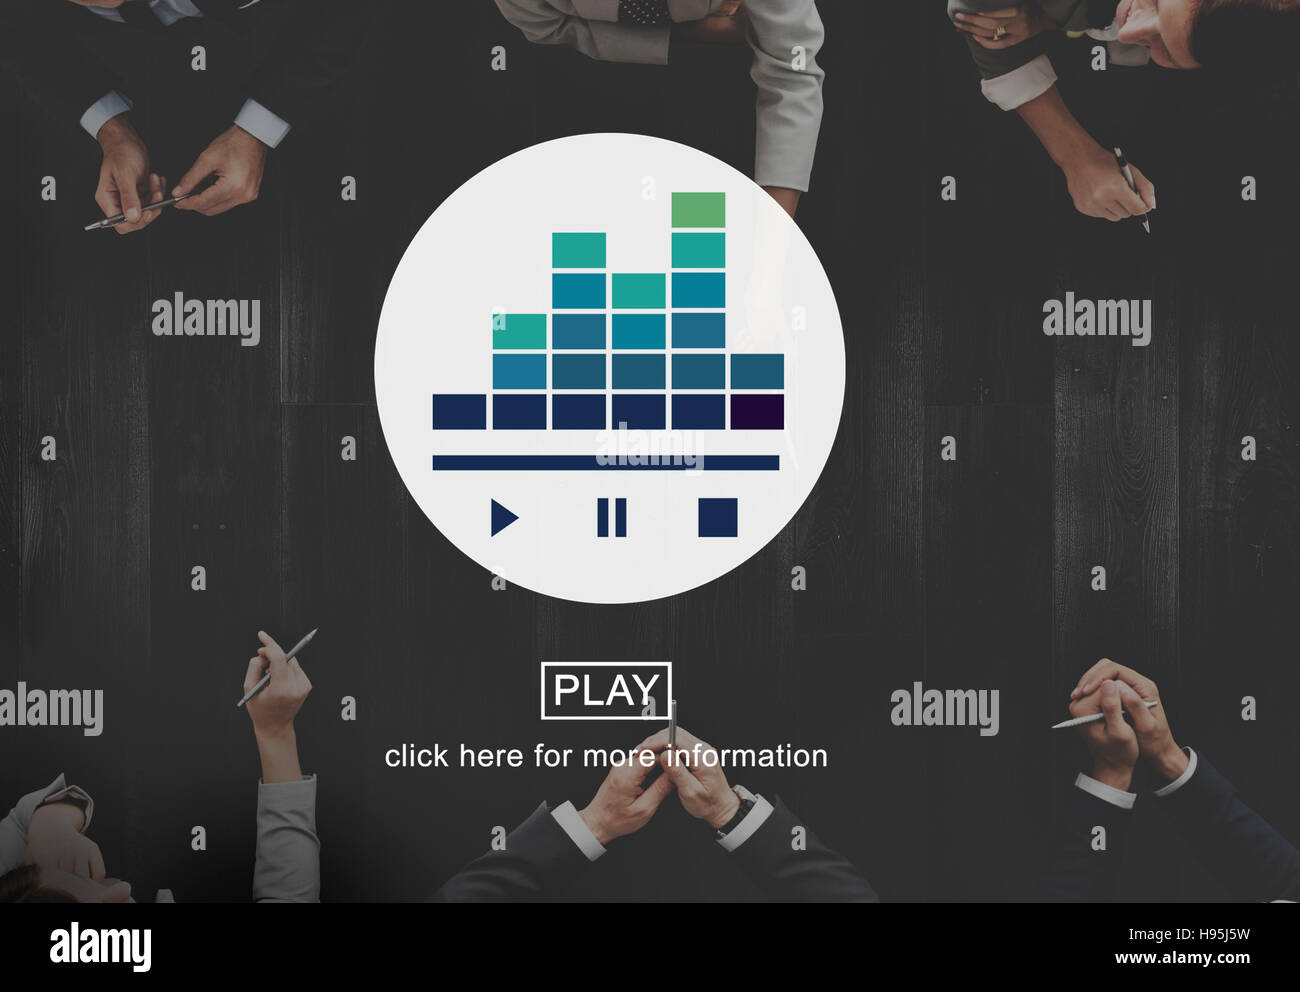 Play Pause Stop Video Music Concept - Stock Image